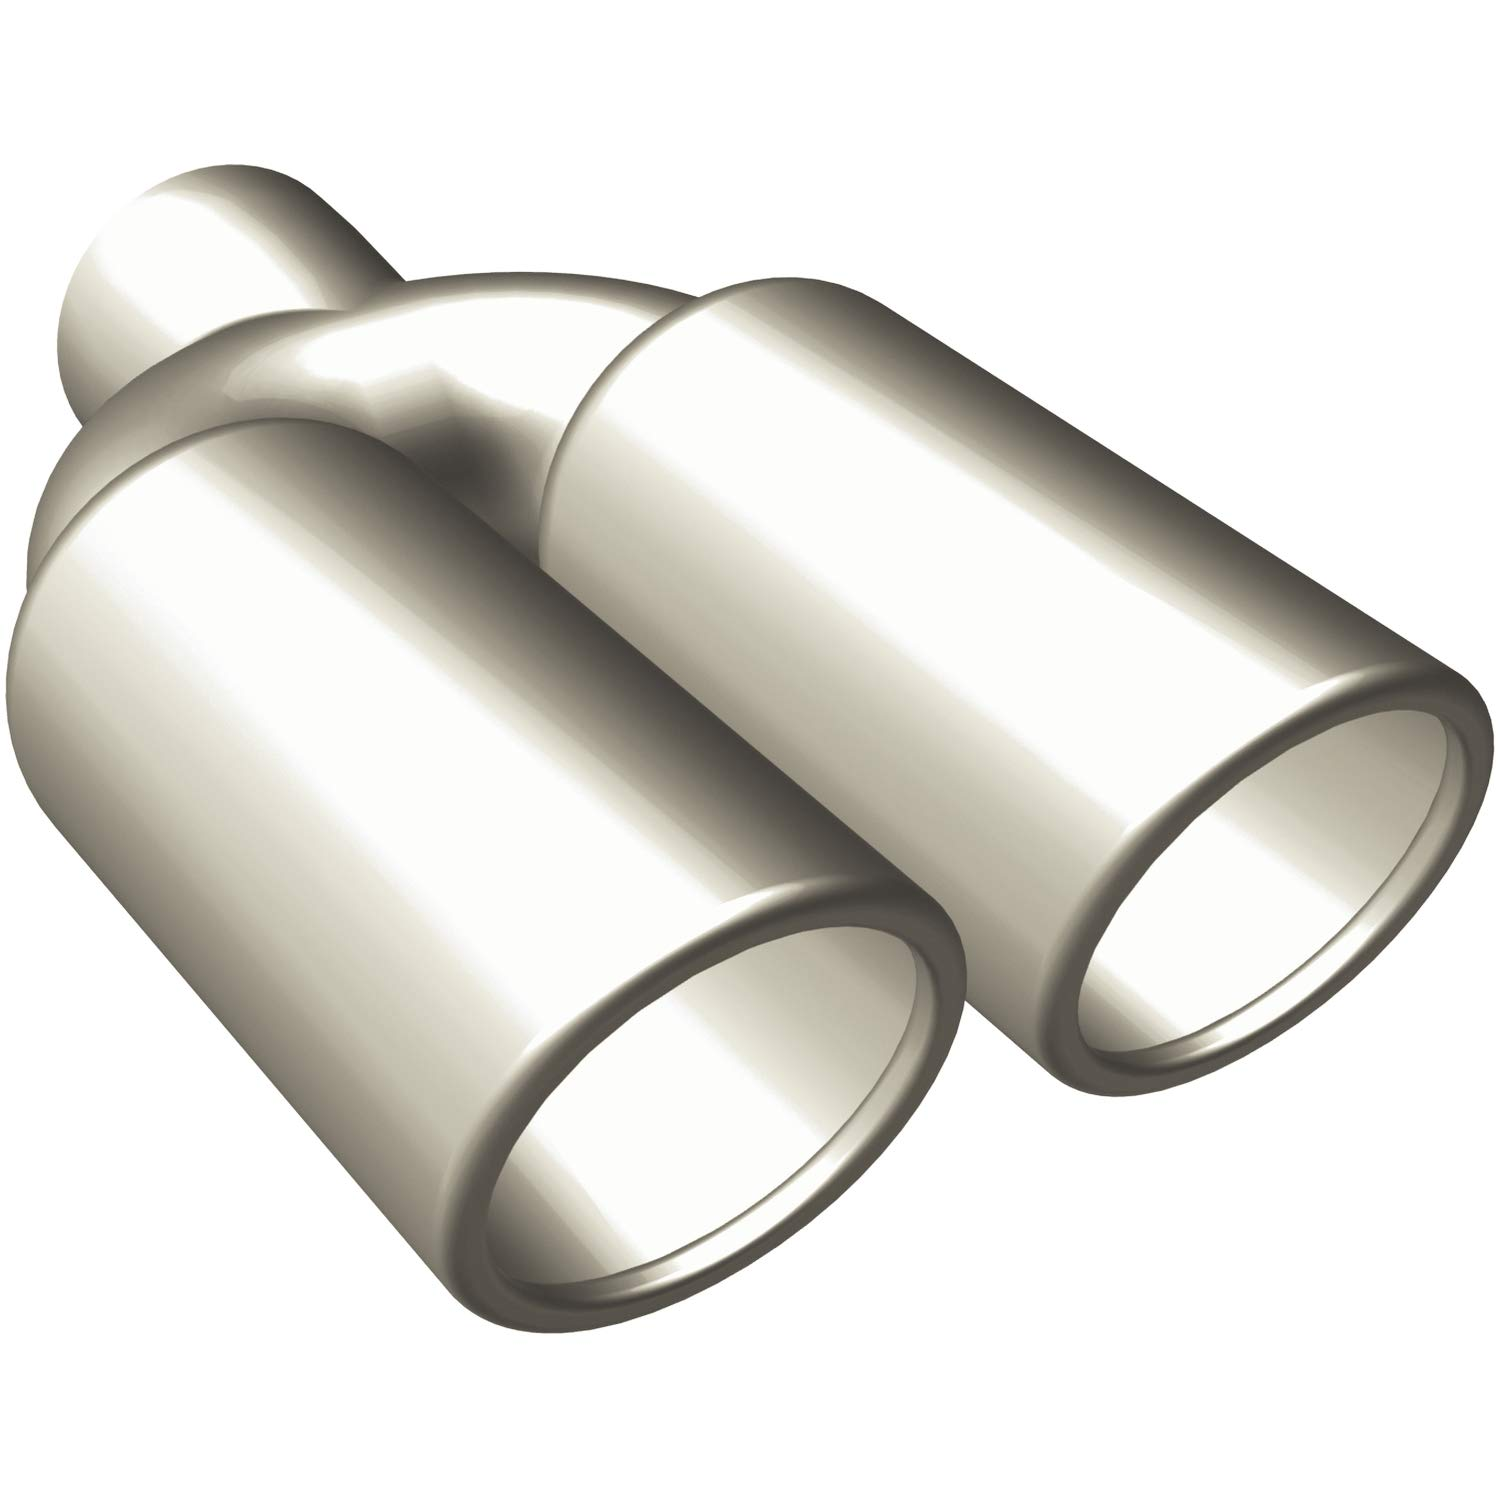 Magnaflow 35168 Stainless Steel 2.25 Exhaust Tip MagnaFlow Exhaust Products